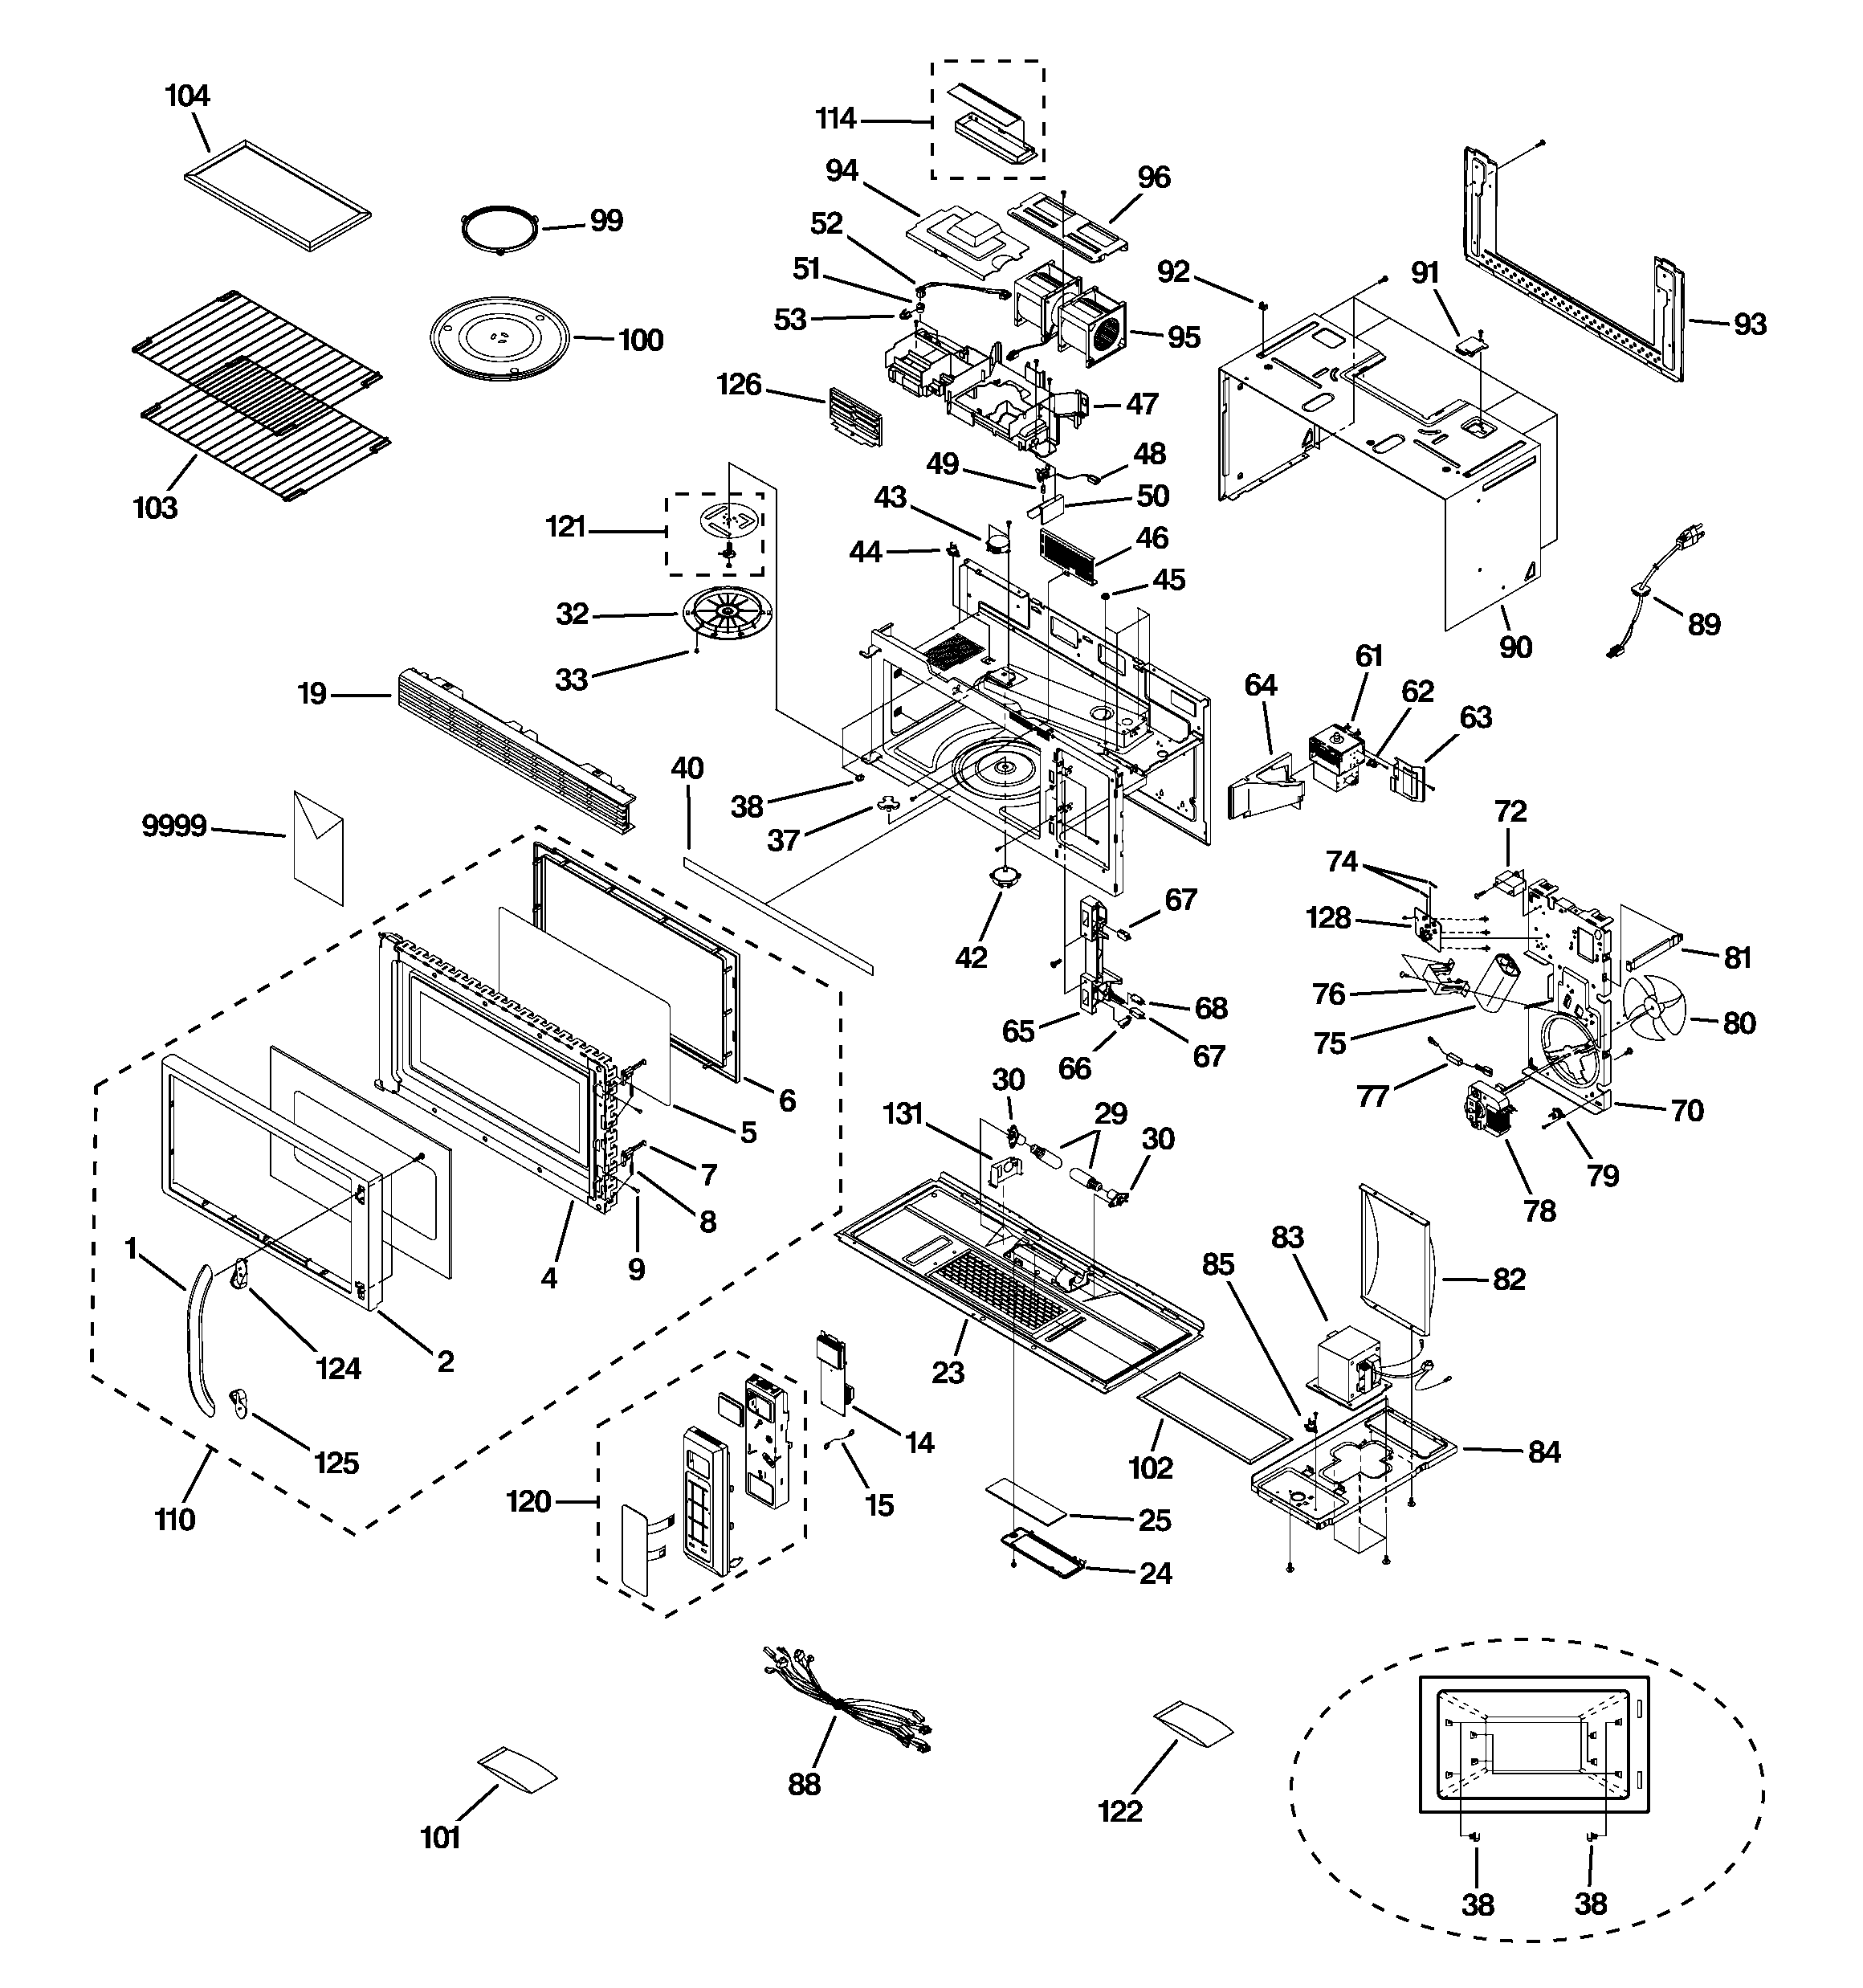 G0604228 00001?resize\\\\\\\\\\\\\\\\\\\\\\\\\\\\\\\=665%2C709 wiring diagram for range hood fan nautilus range hood wiring  at bayanpartner.co